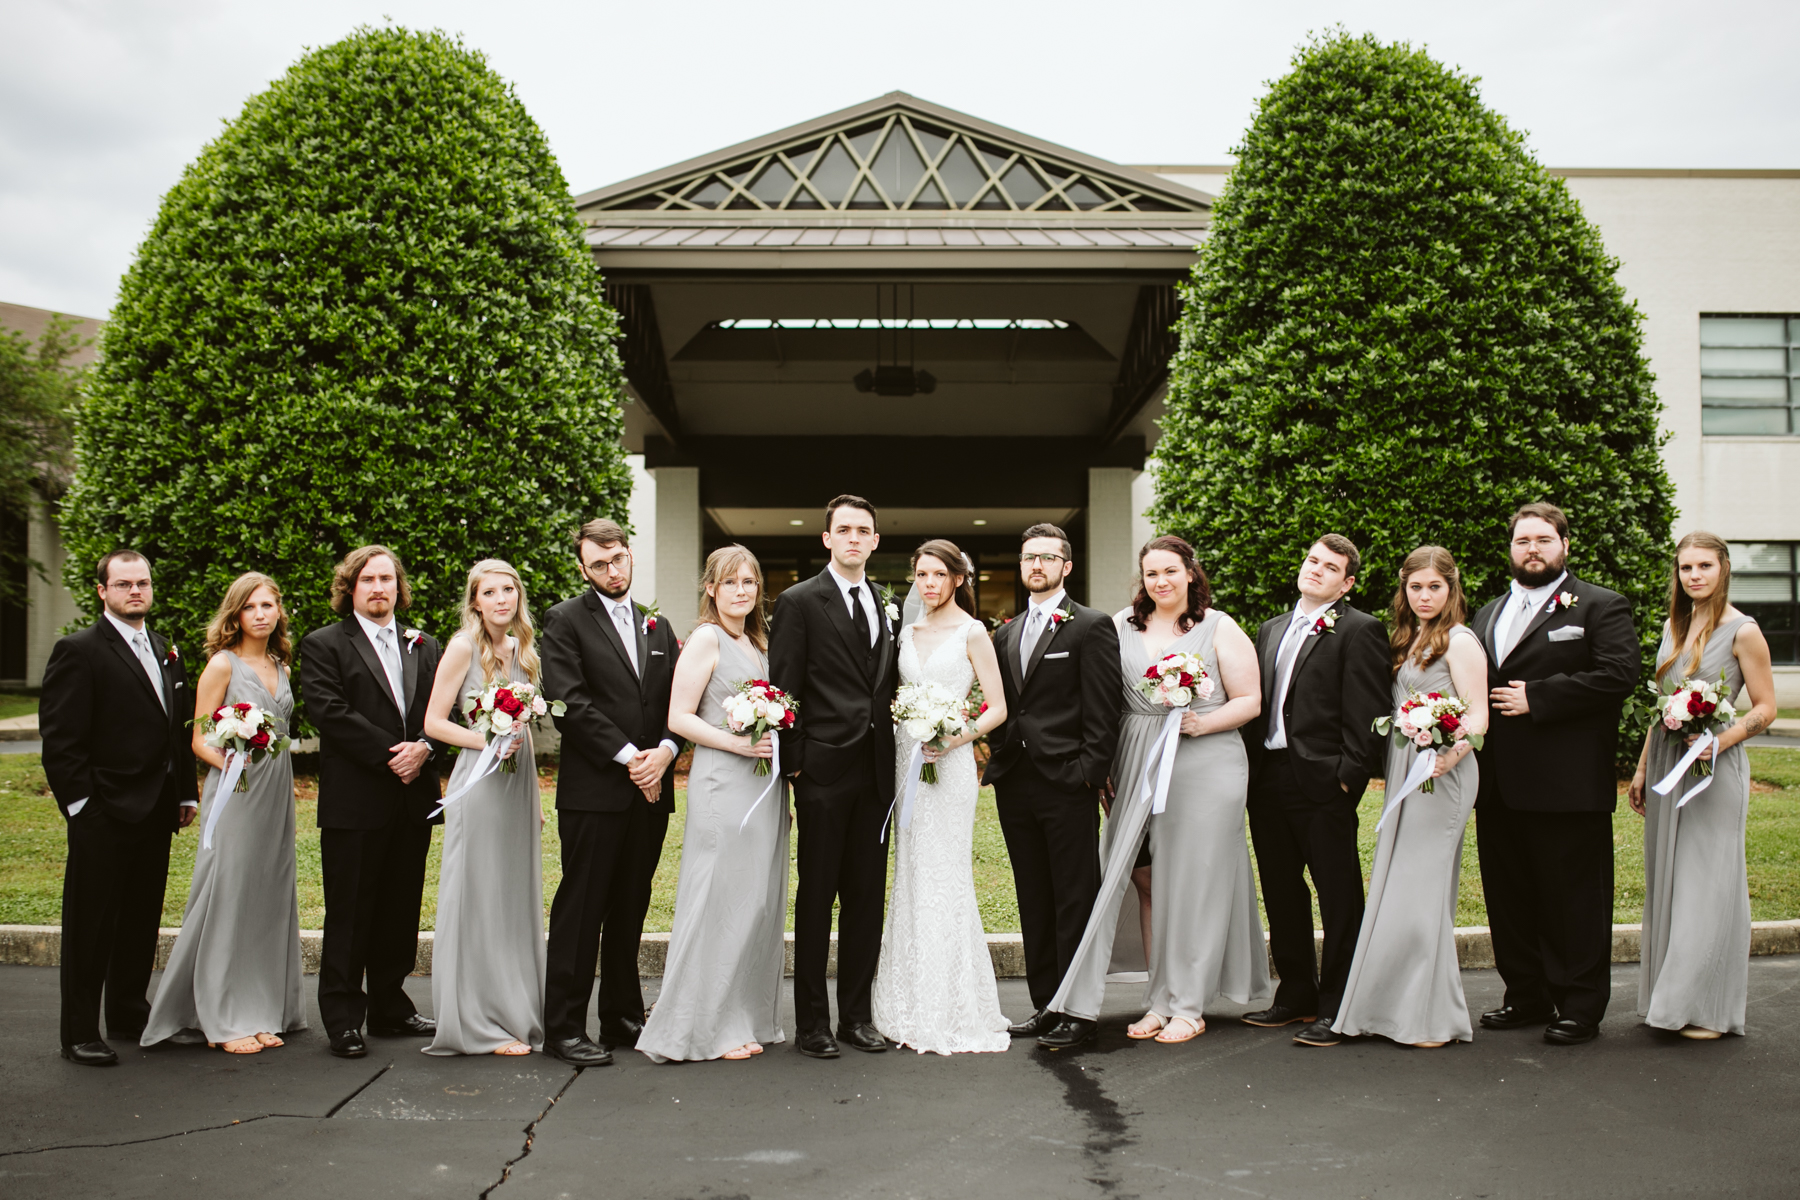 bridal party at a rainy summer wedding at brentwood hills church in Nashville, tennessee